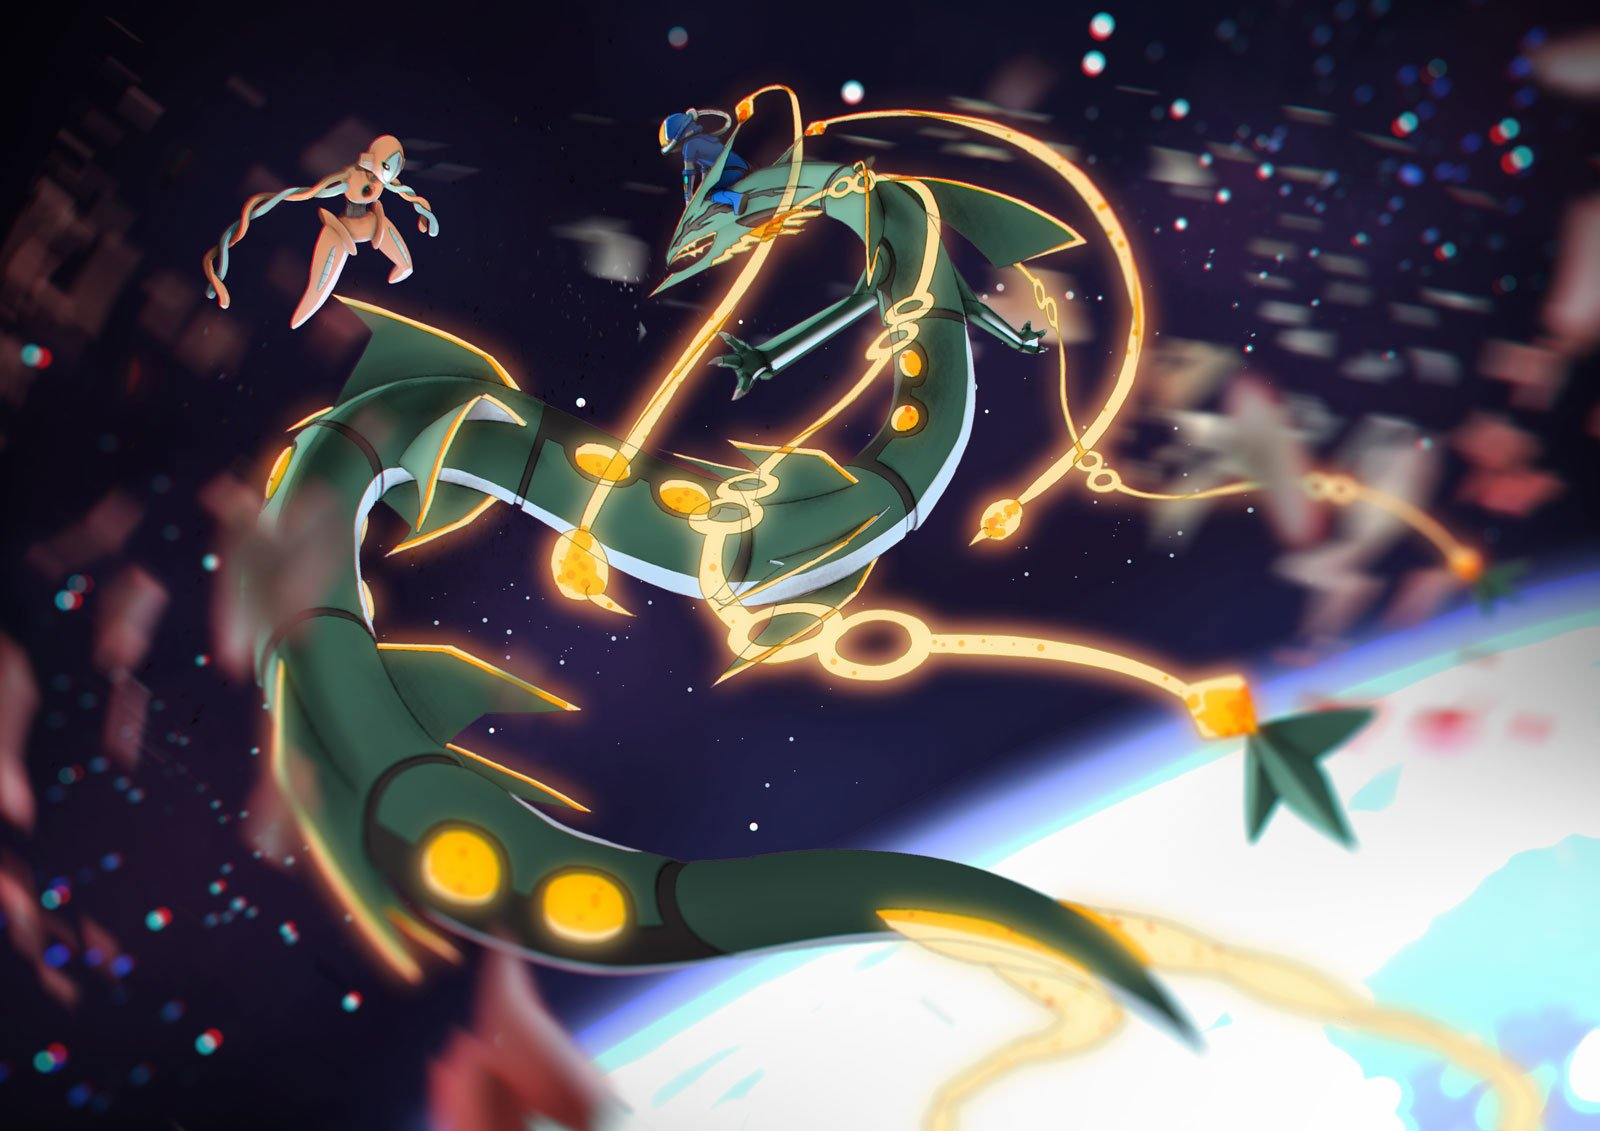 deoxys vs mega rayquaza wallpaper and background image